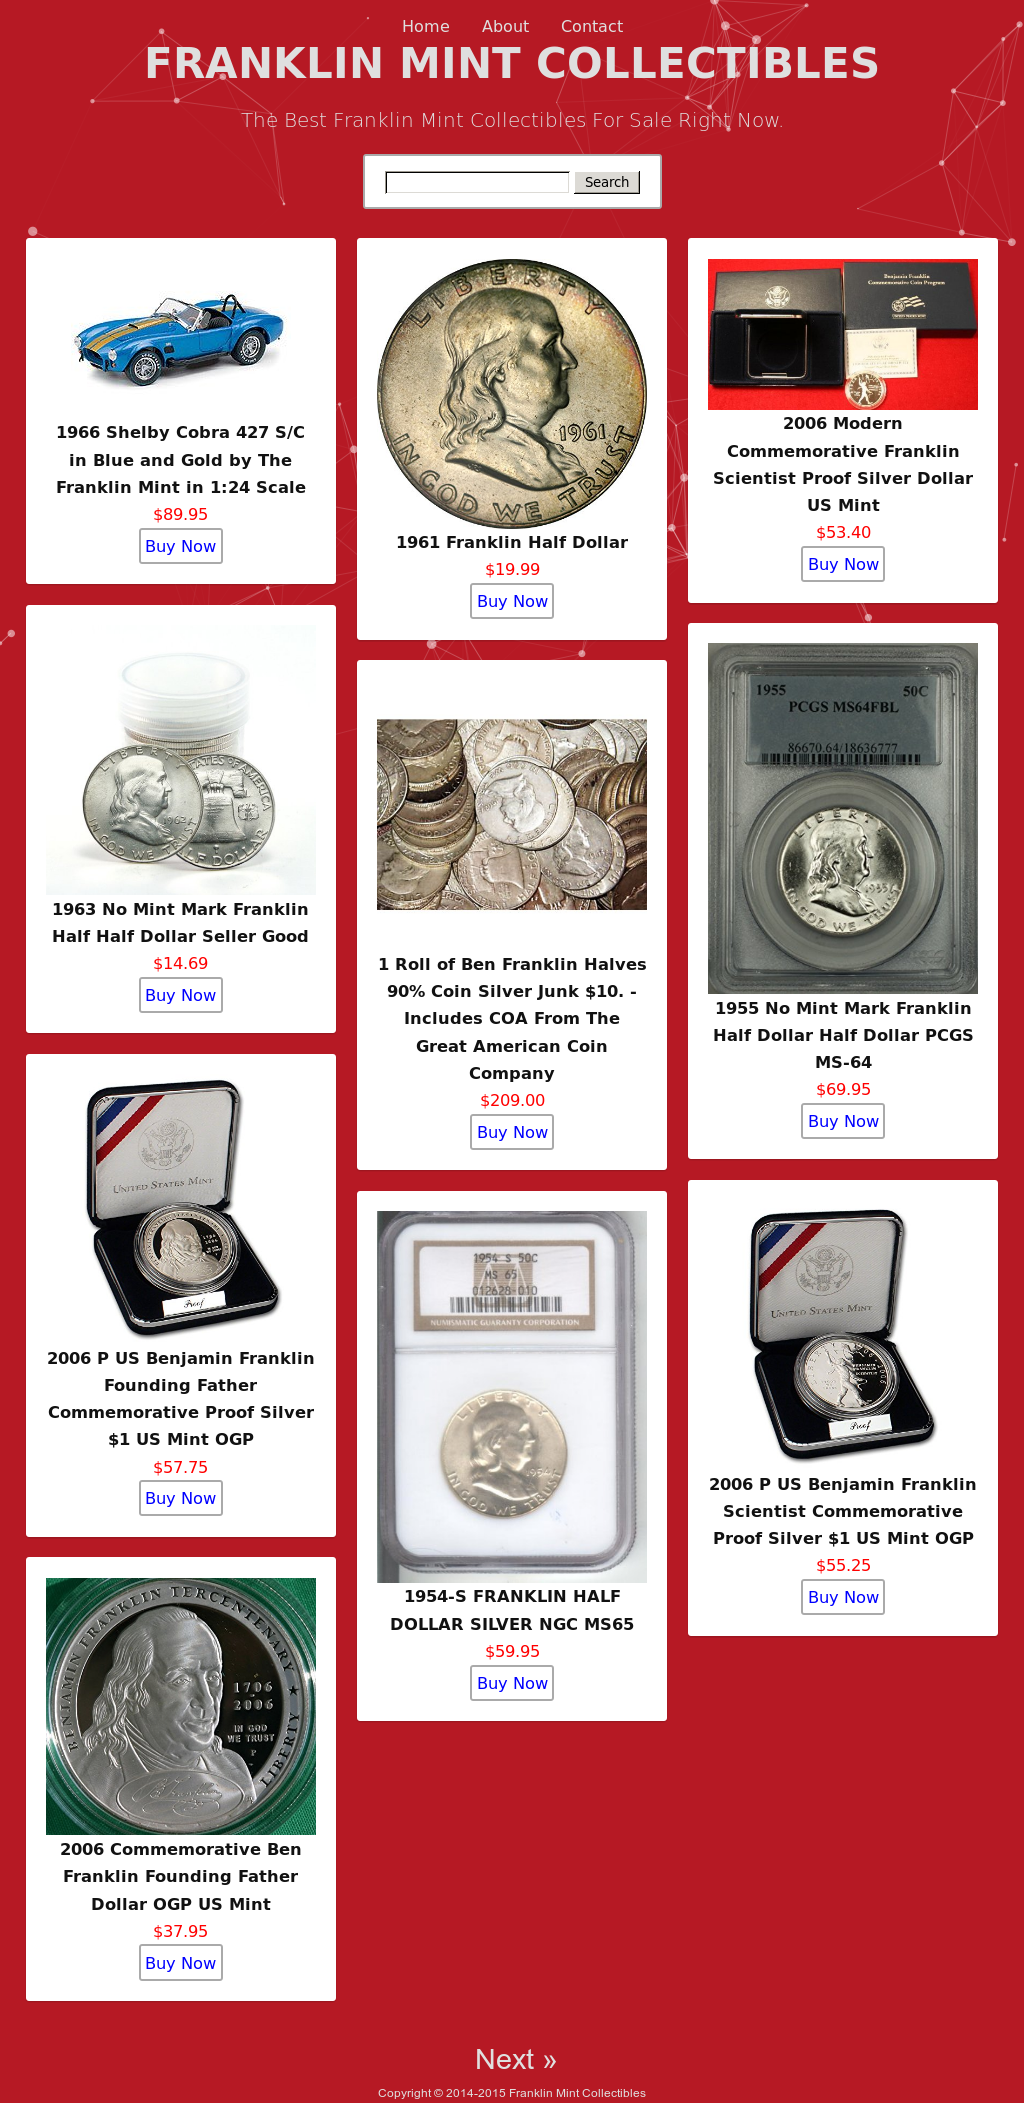 Franklin Mint Collectibles Competitors, Revenue and